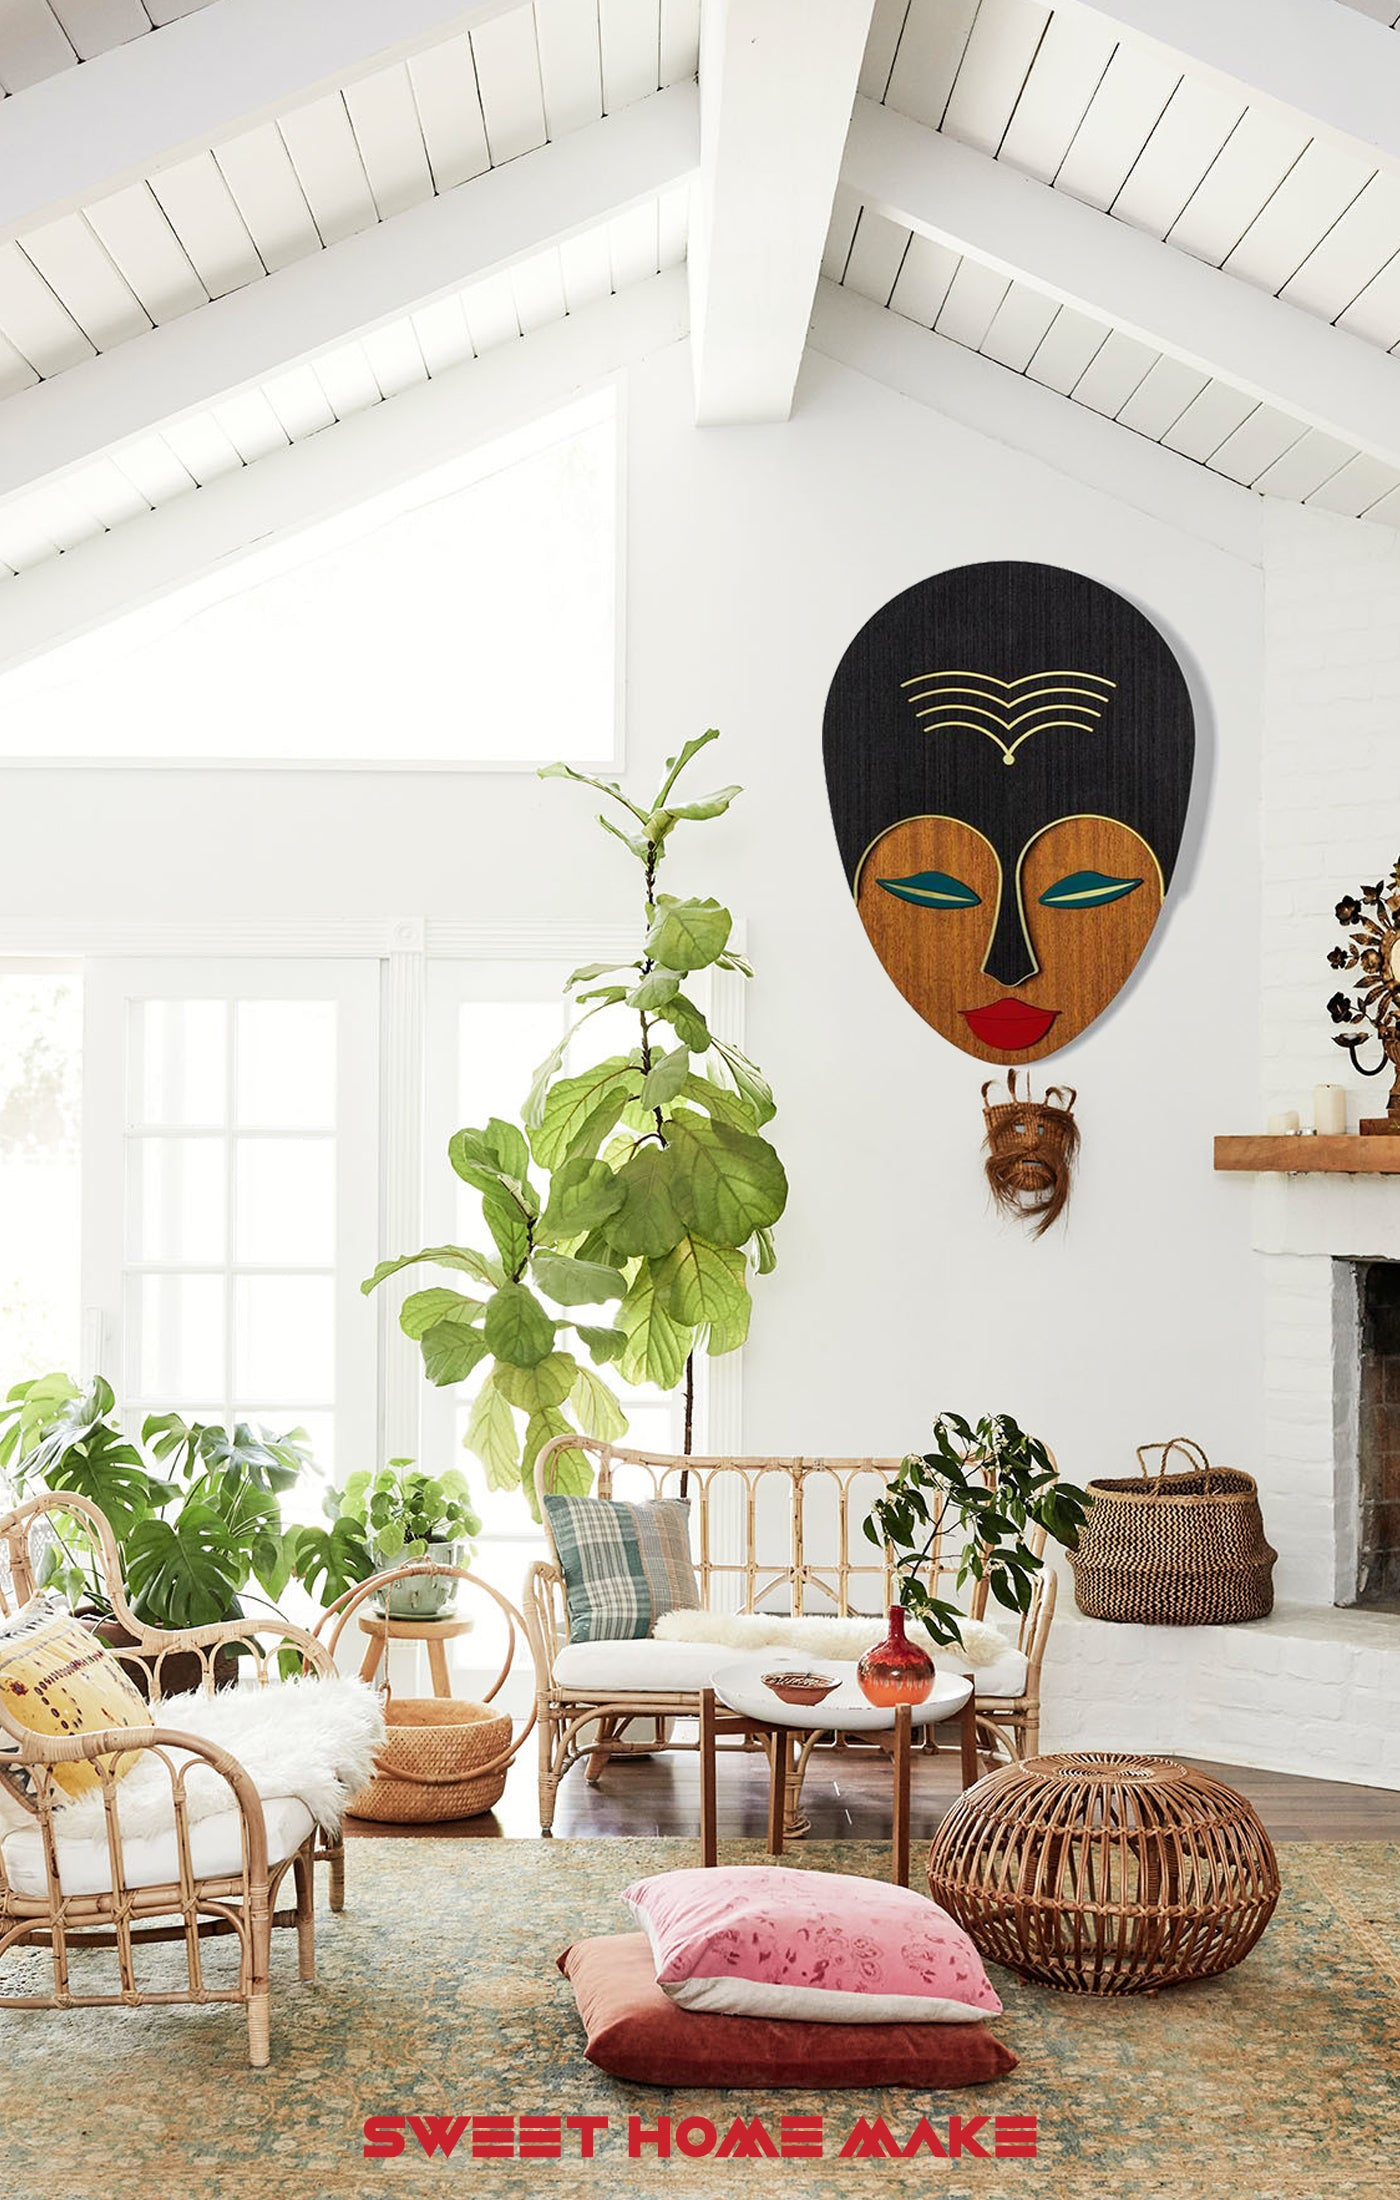 Natural Creative Unique Wood Wall Art Inspired Life And Habits The Sweet Home Make